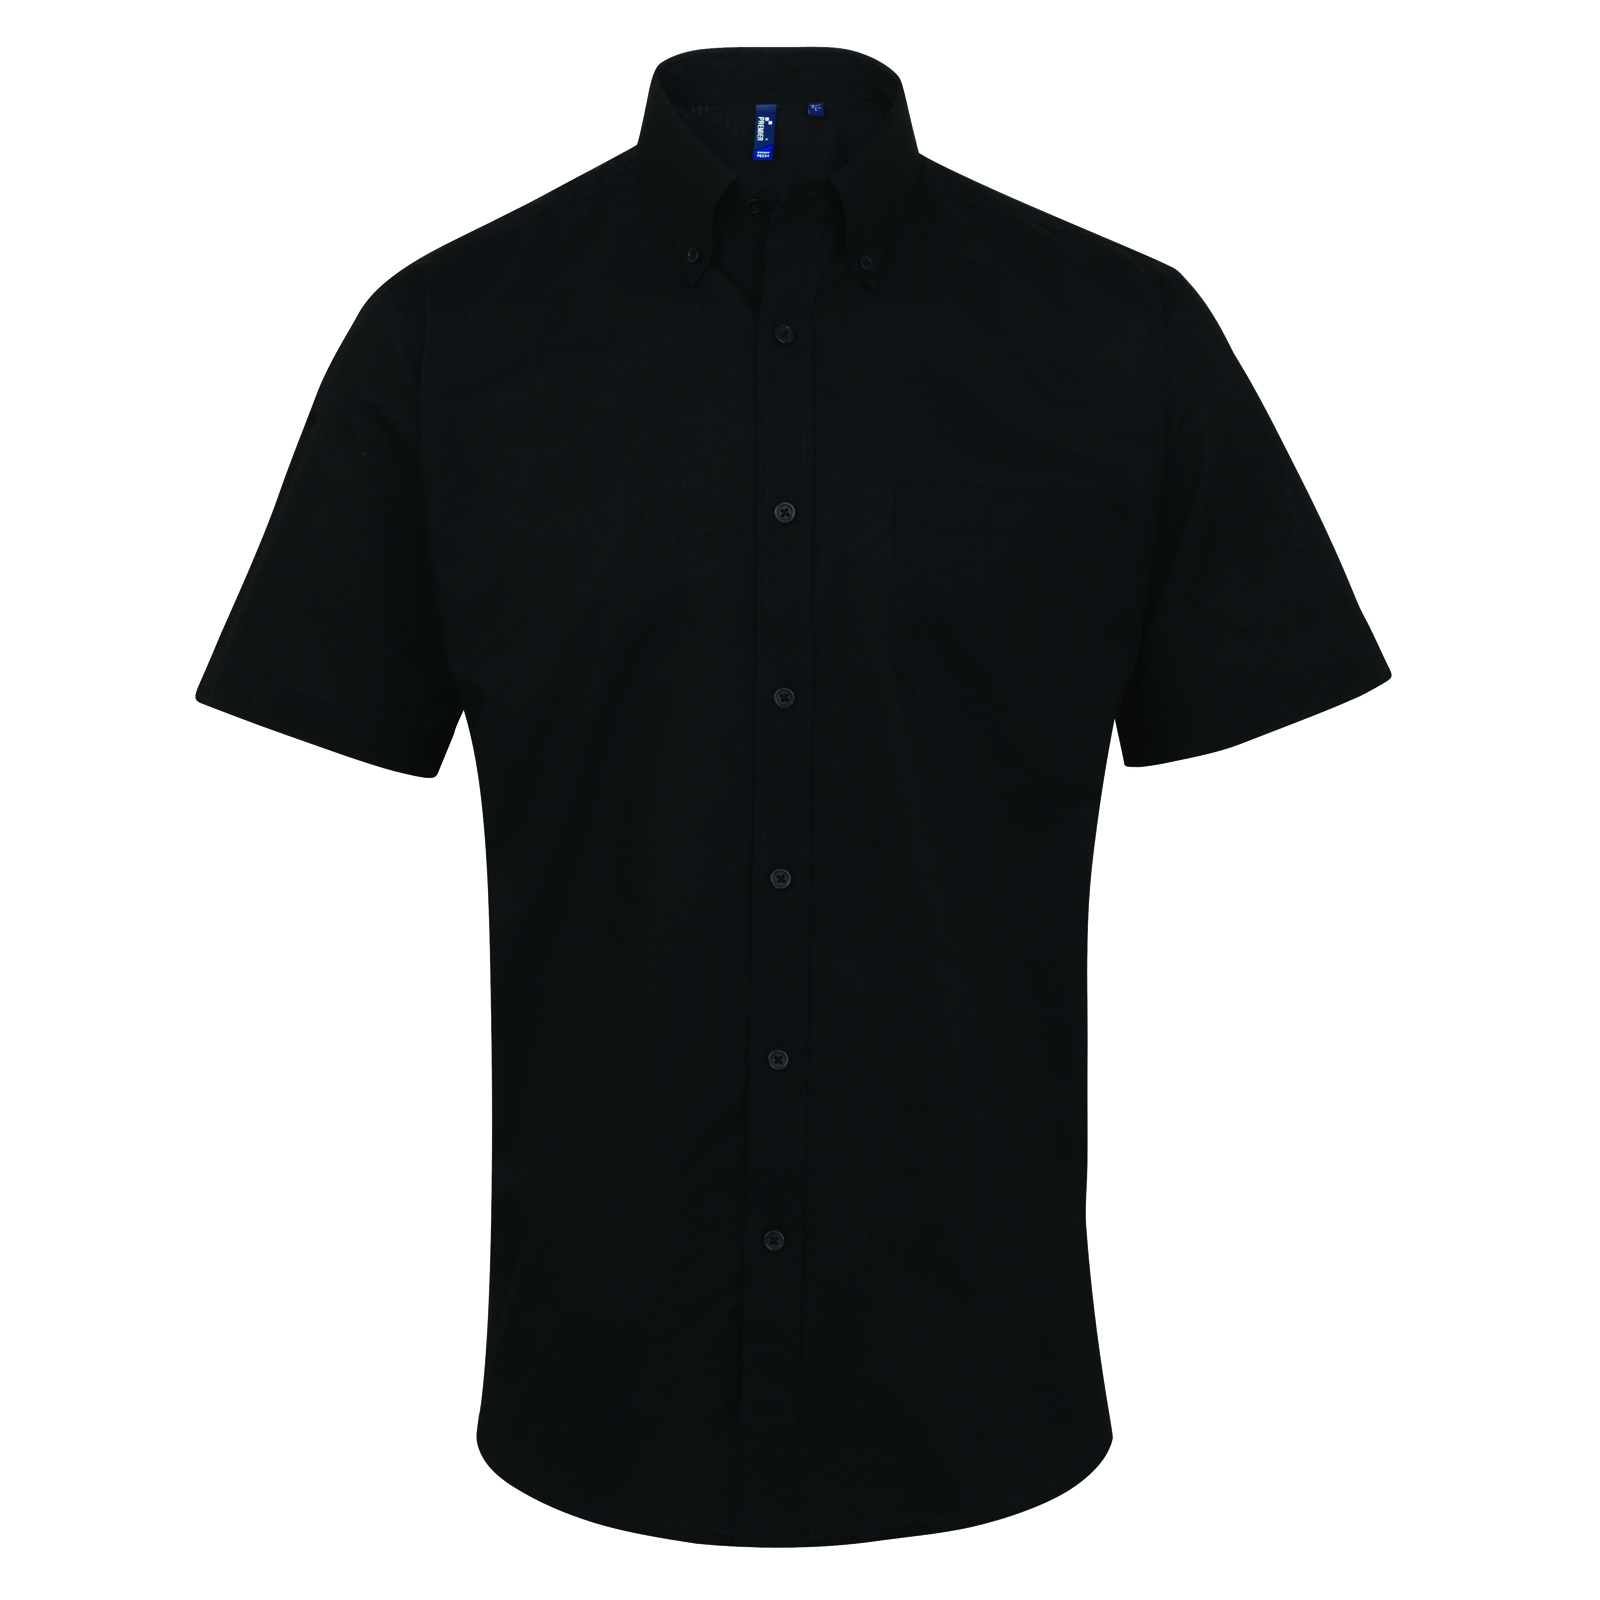 Premier Mens Signature Oxford Short Sleeve Collared Shirt Collar ...